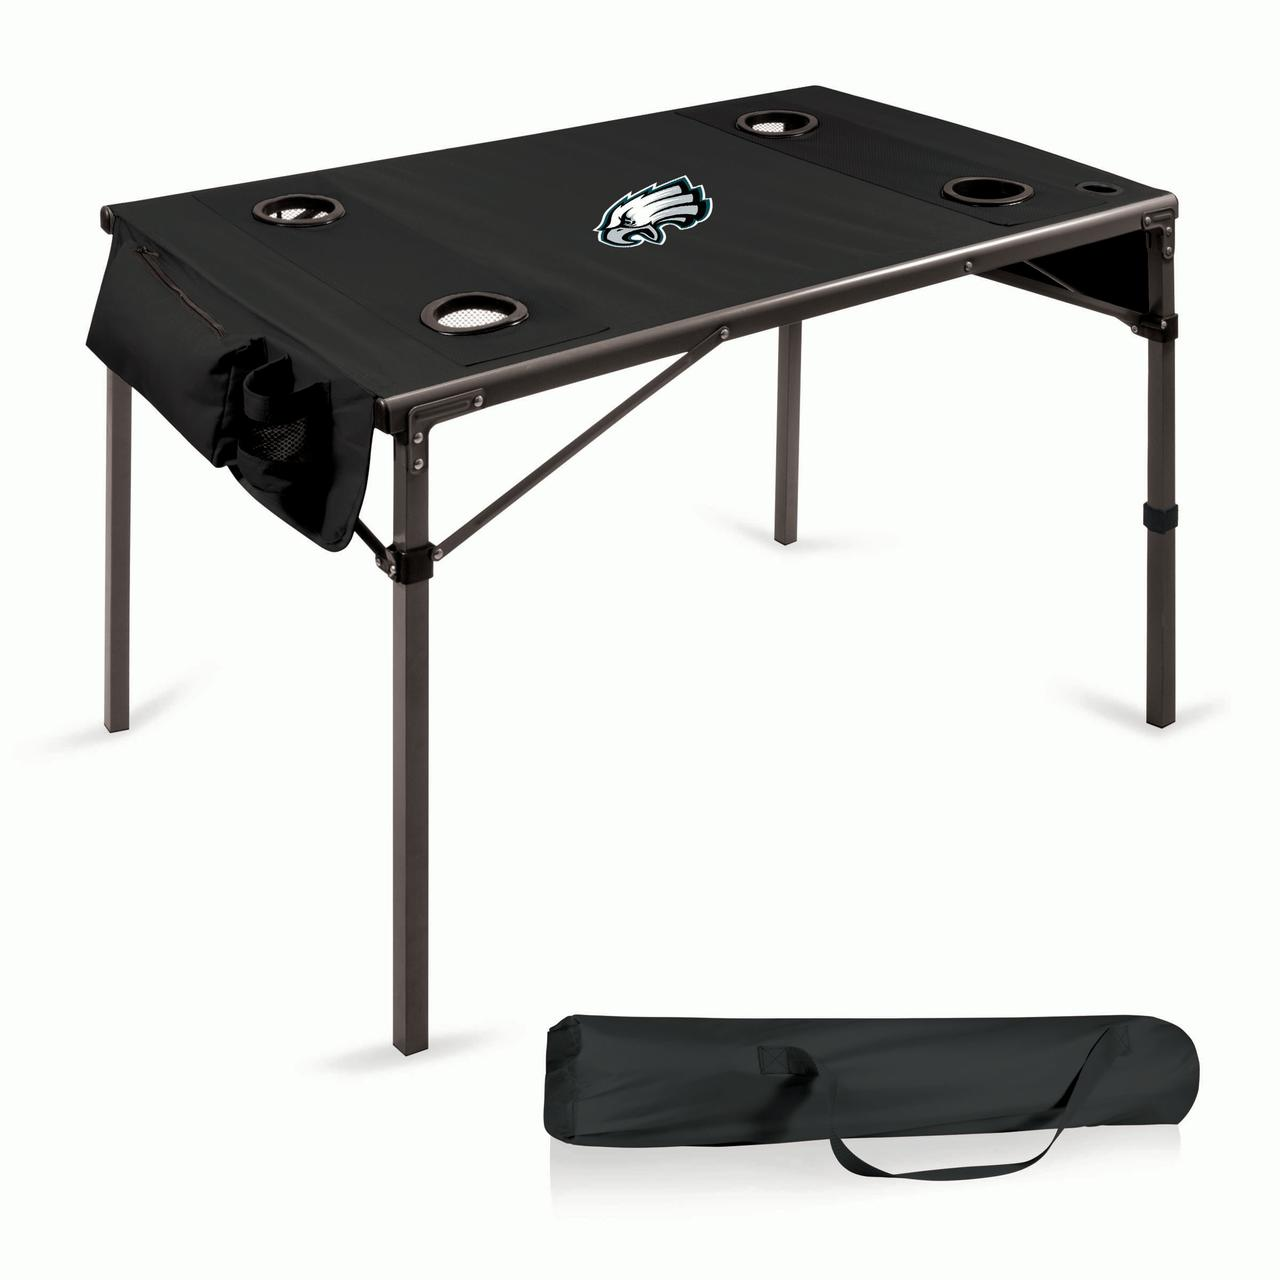 Philadelphia Eagles Portable Folding Travel Table - Black - No Size